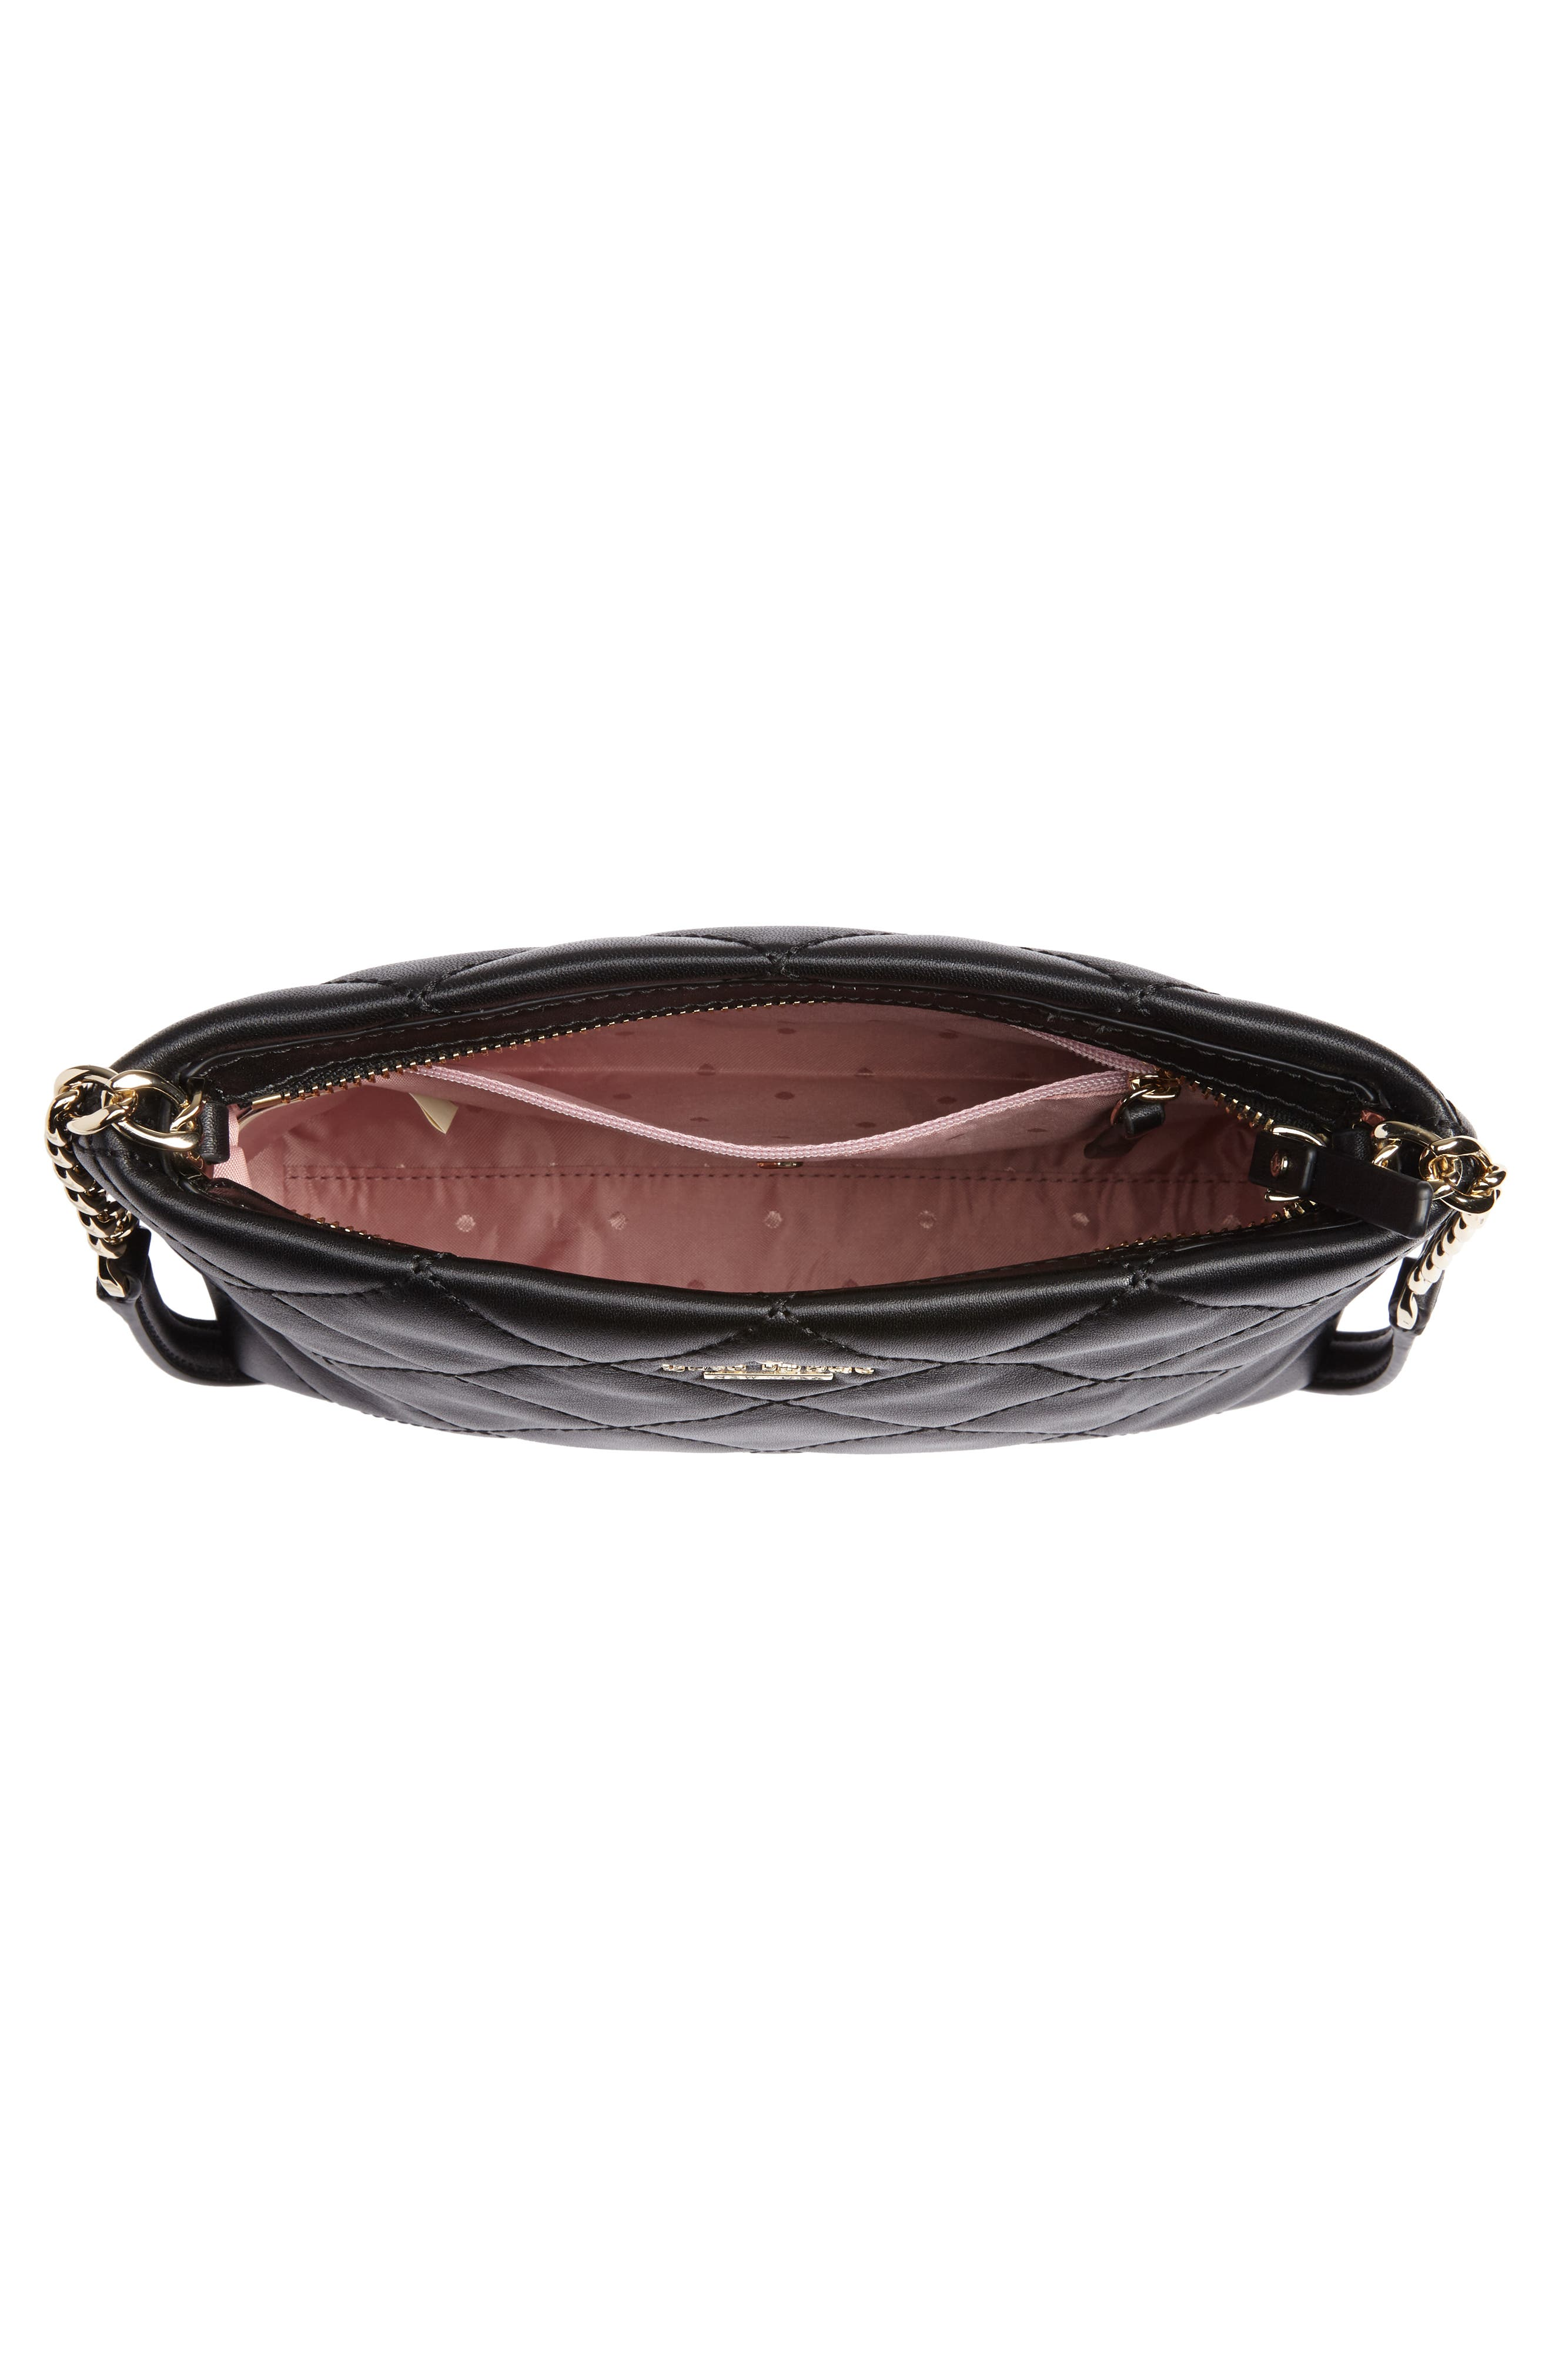 emerson place caterina leather crossbody bag,                             Alternate thumbnail 4, color,                             Black